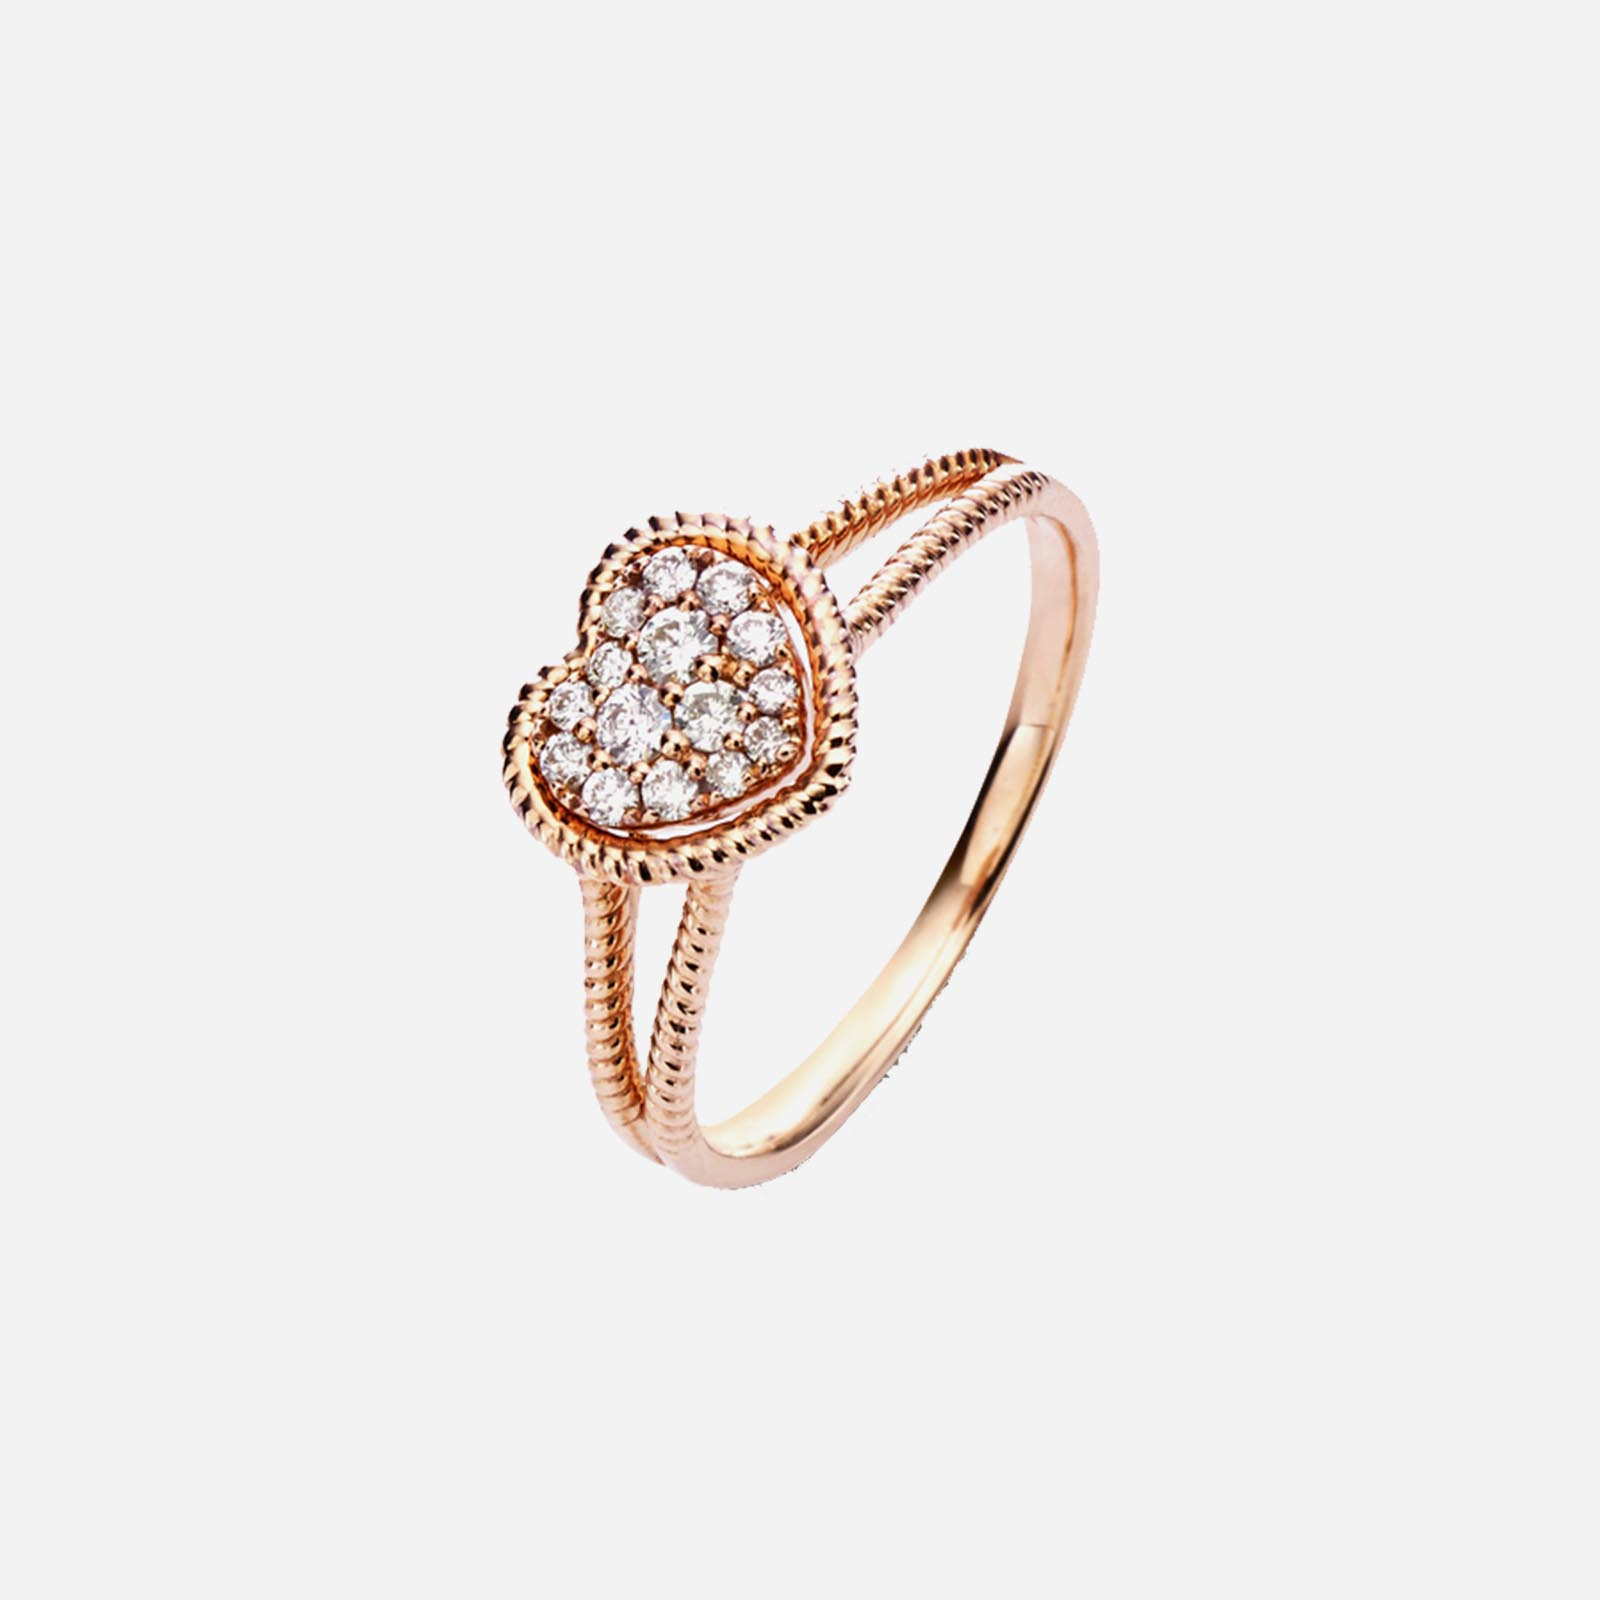 Rose Gold Heart-shaped Ring